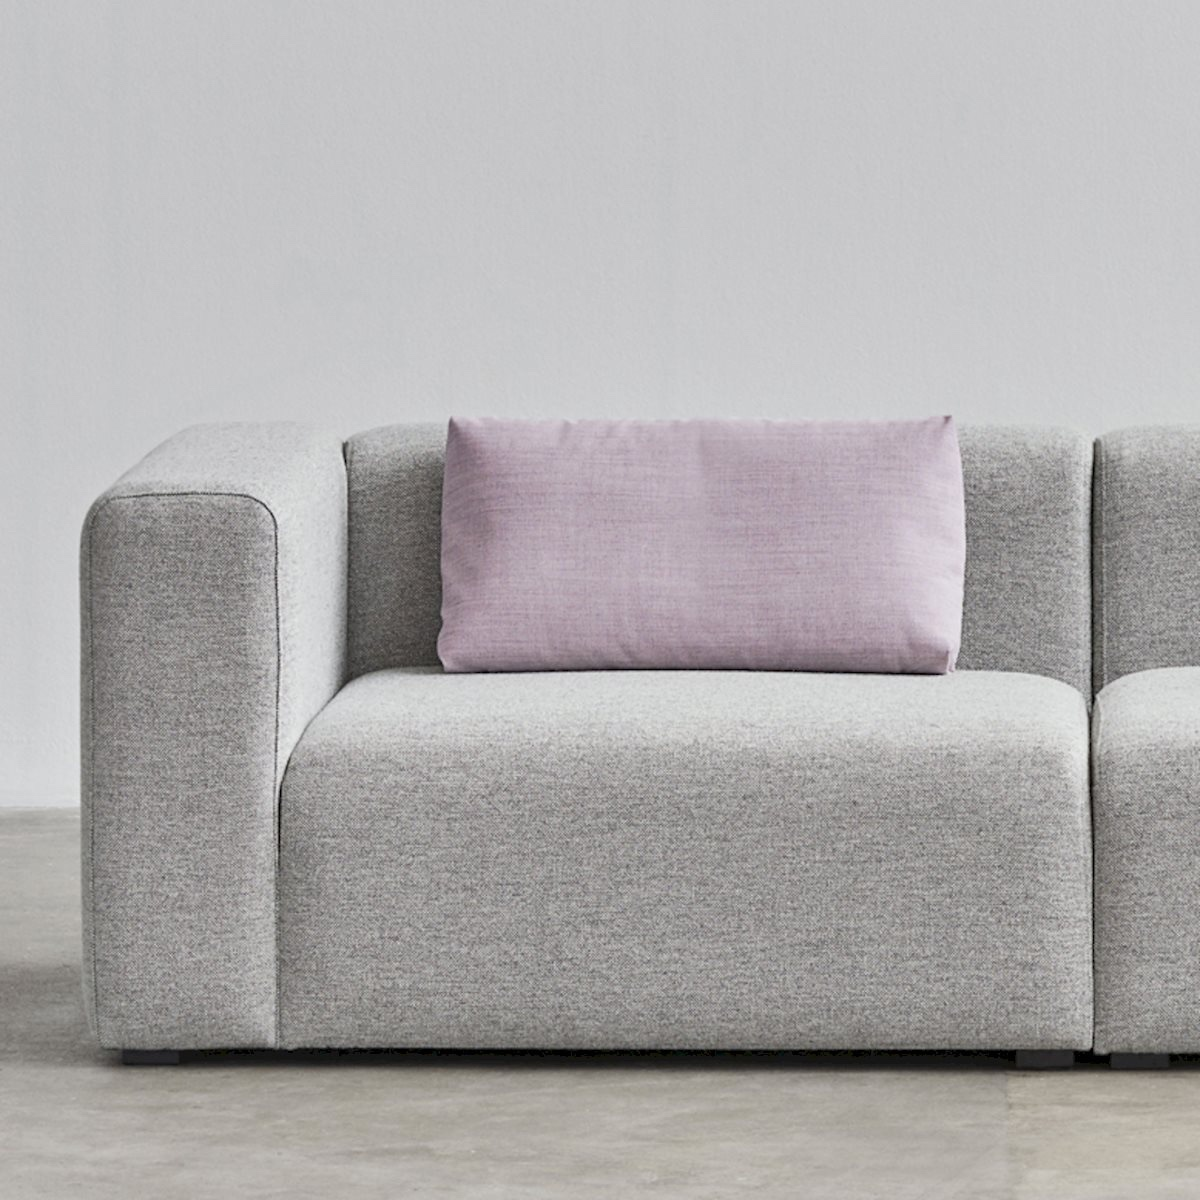 Mags 3-seater sofa by Hay II